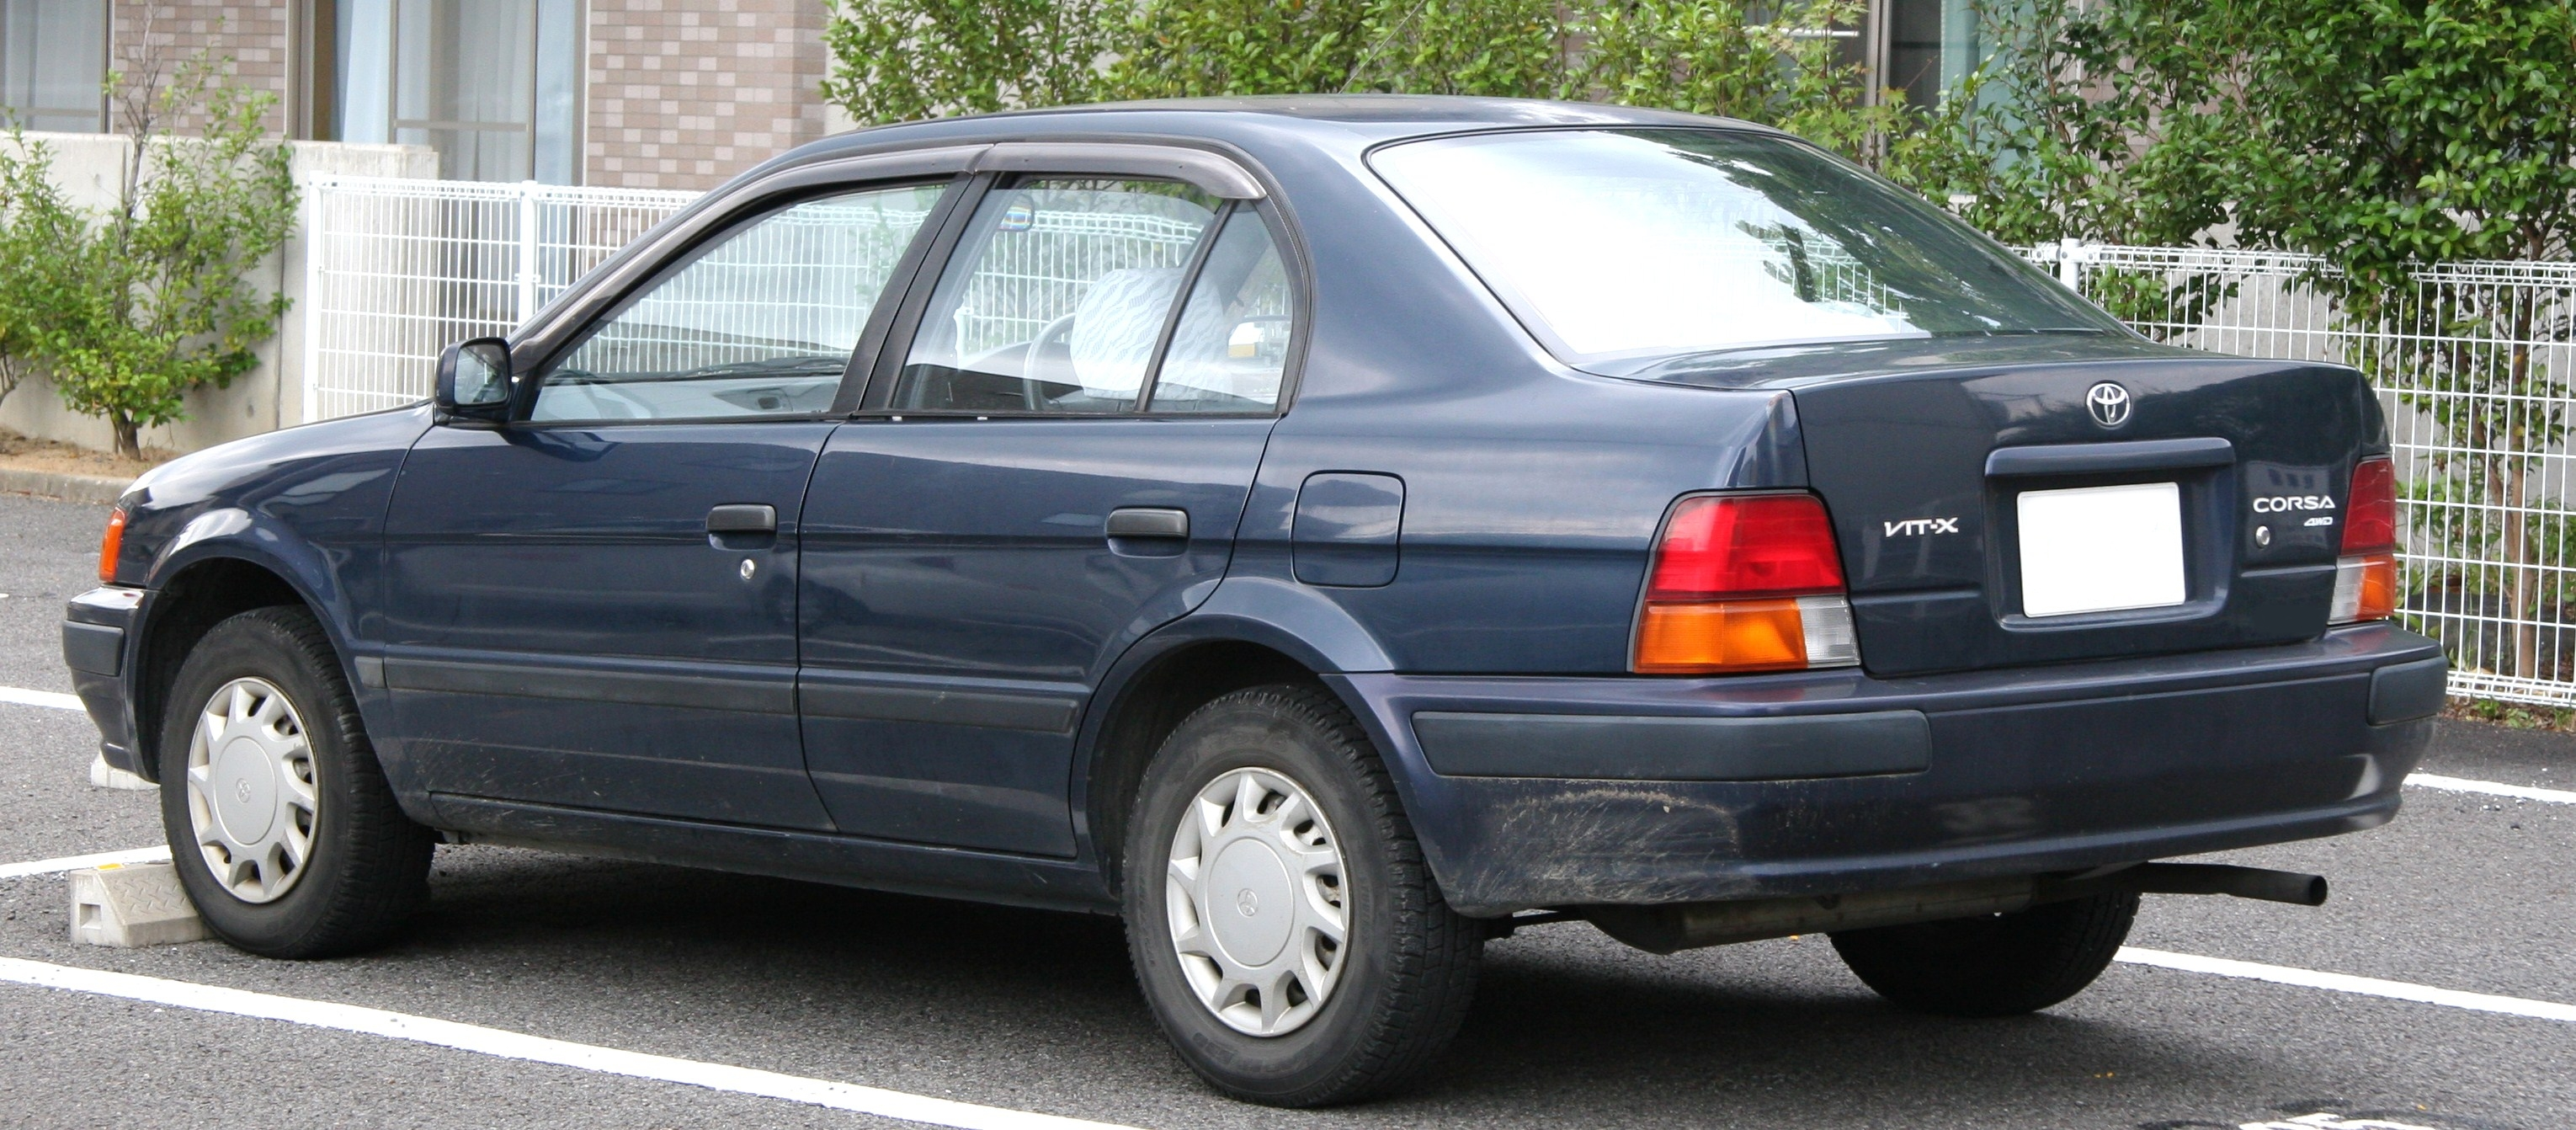 File Toyota Corsa Rear Jpg Wikimedia Commons